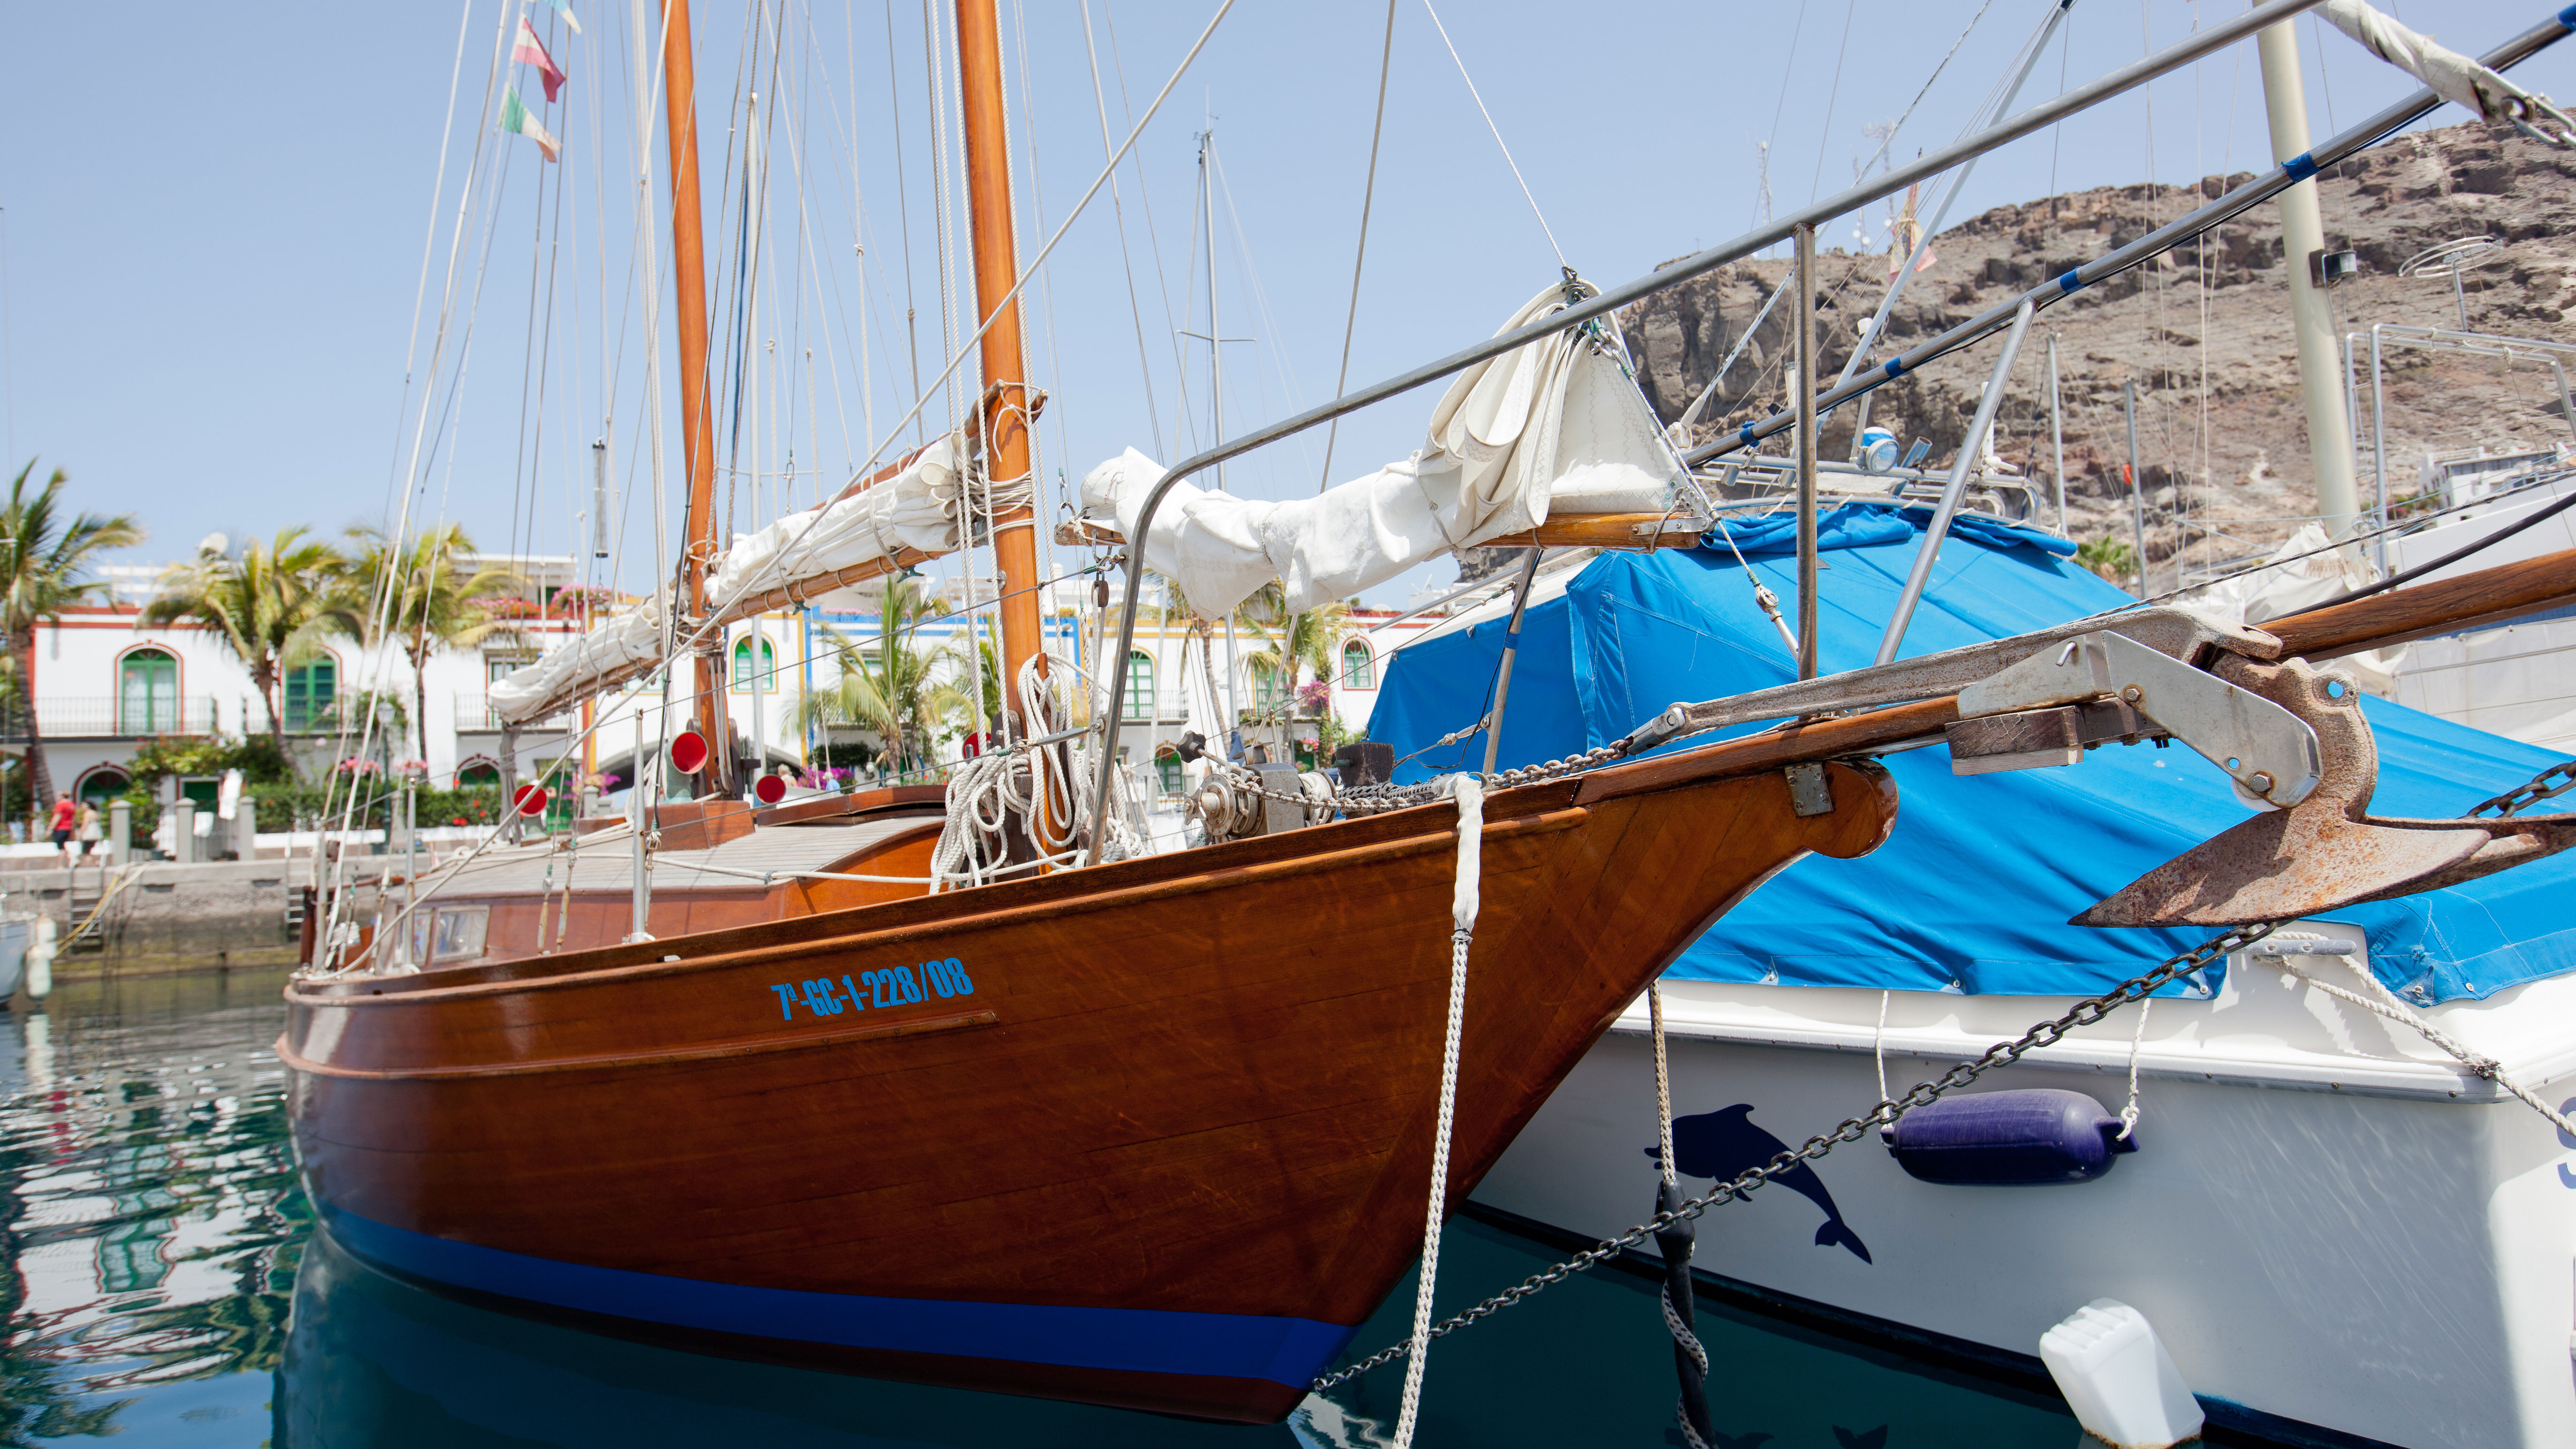 airbnb-sailboat-grand-canary-islands